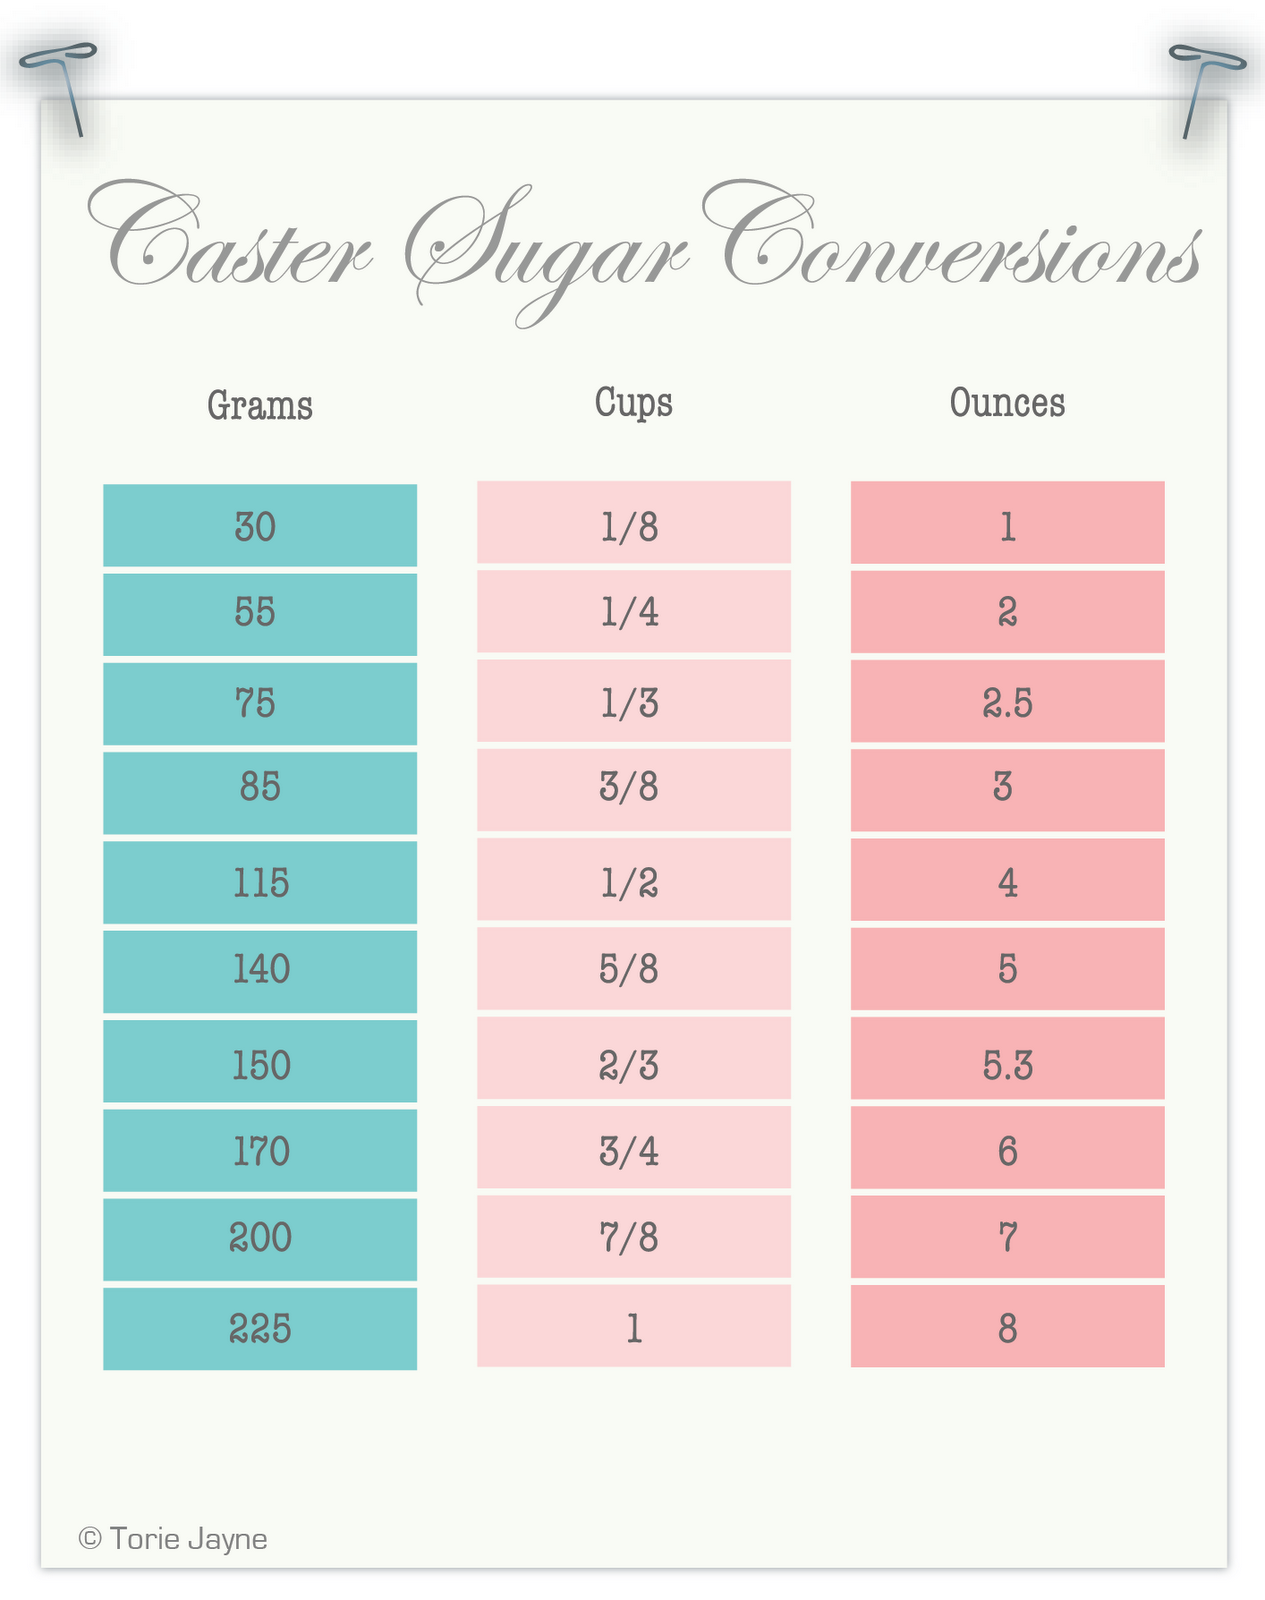 Caster sugar conversion chart